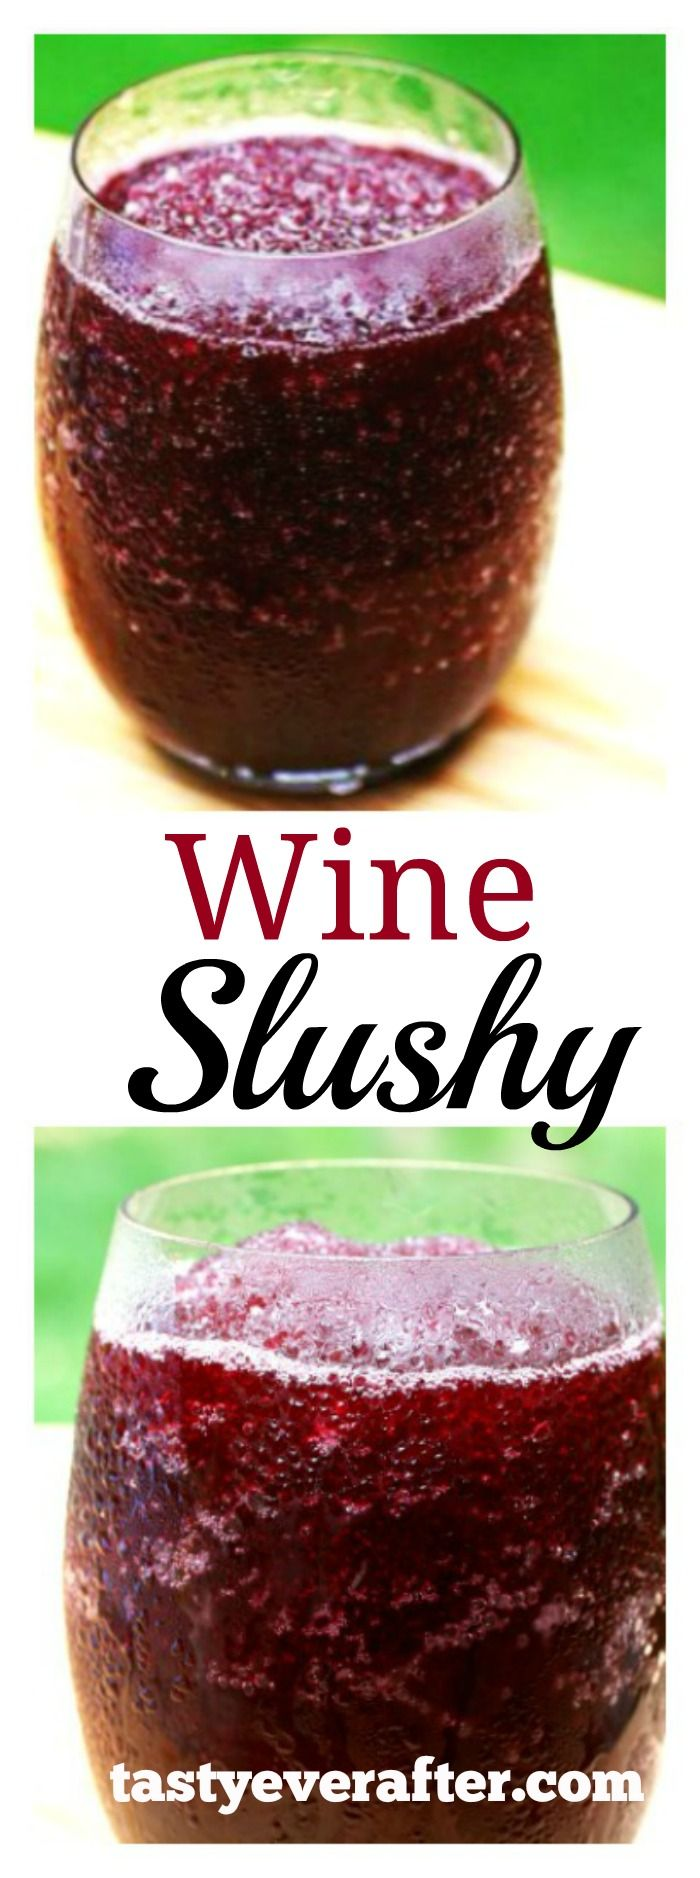 Wine Slushy- The BEST Wine Slushy recipe ever!!! Enjoy summer in a tasty glass.